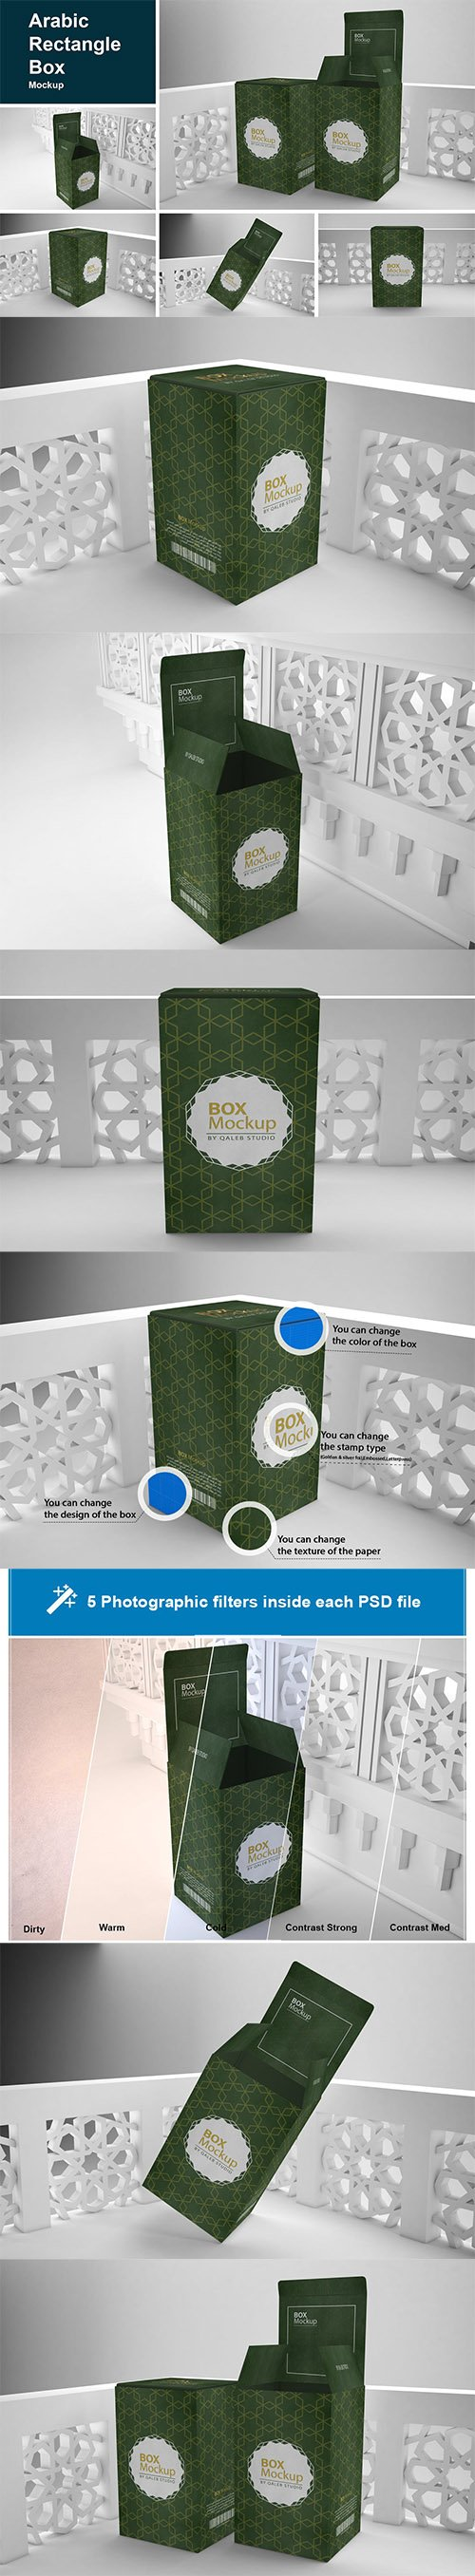 Arabic Rectangle Box Mockup